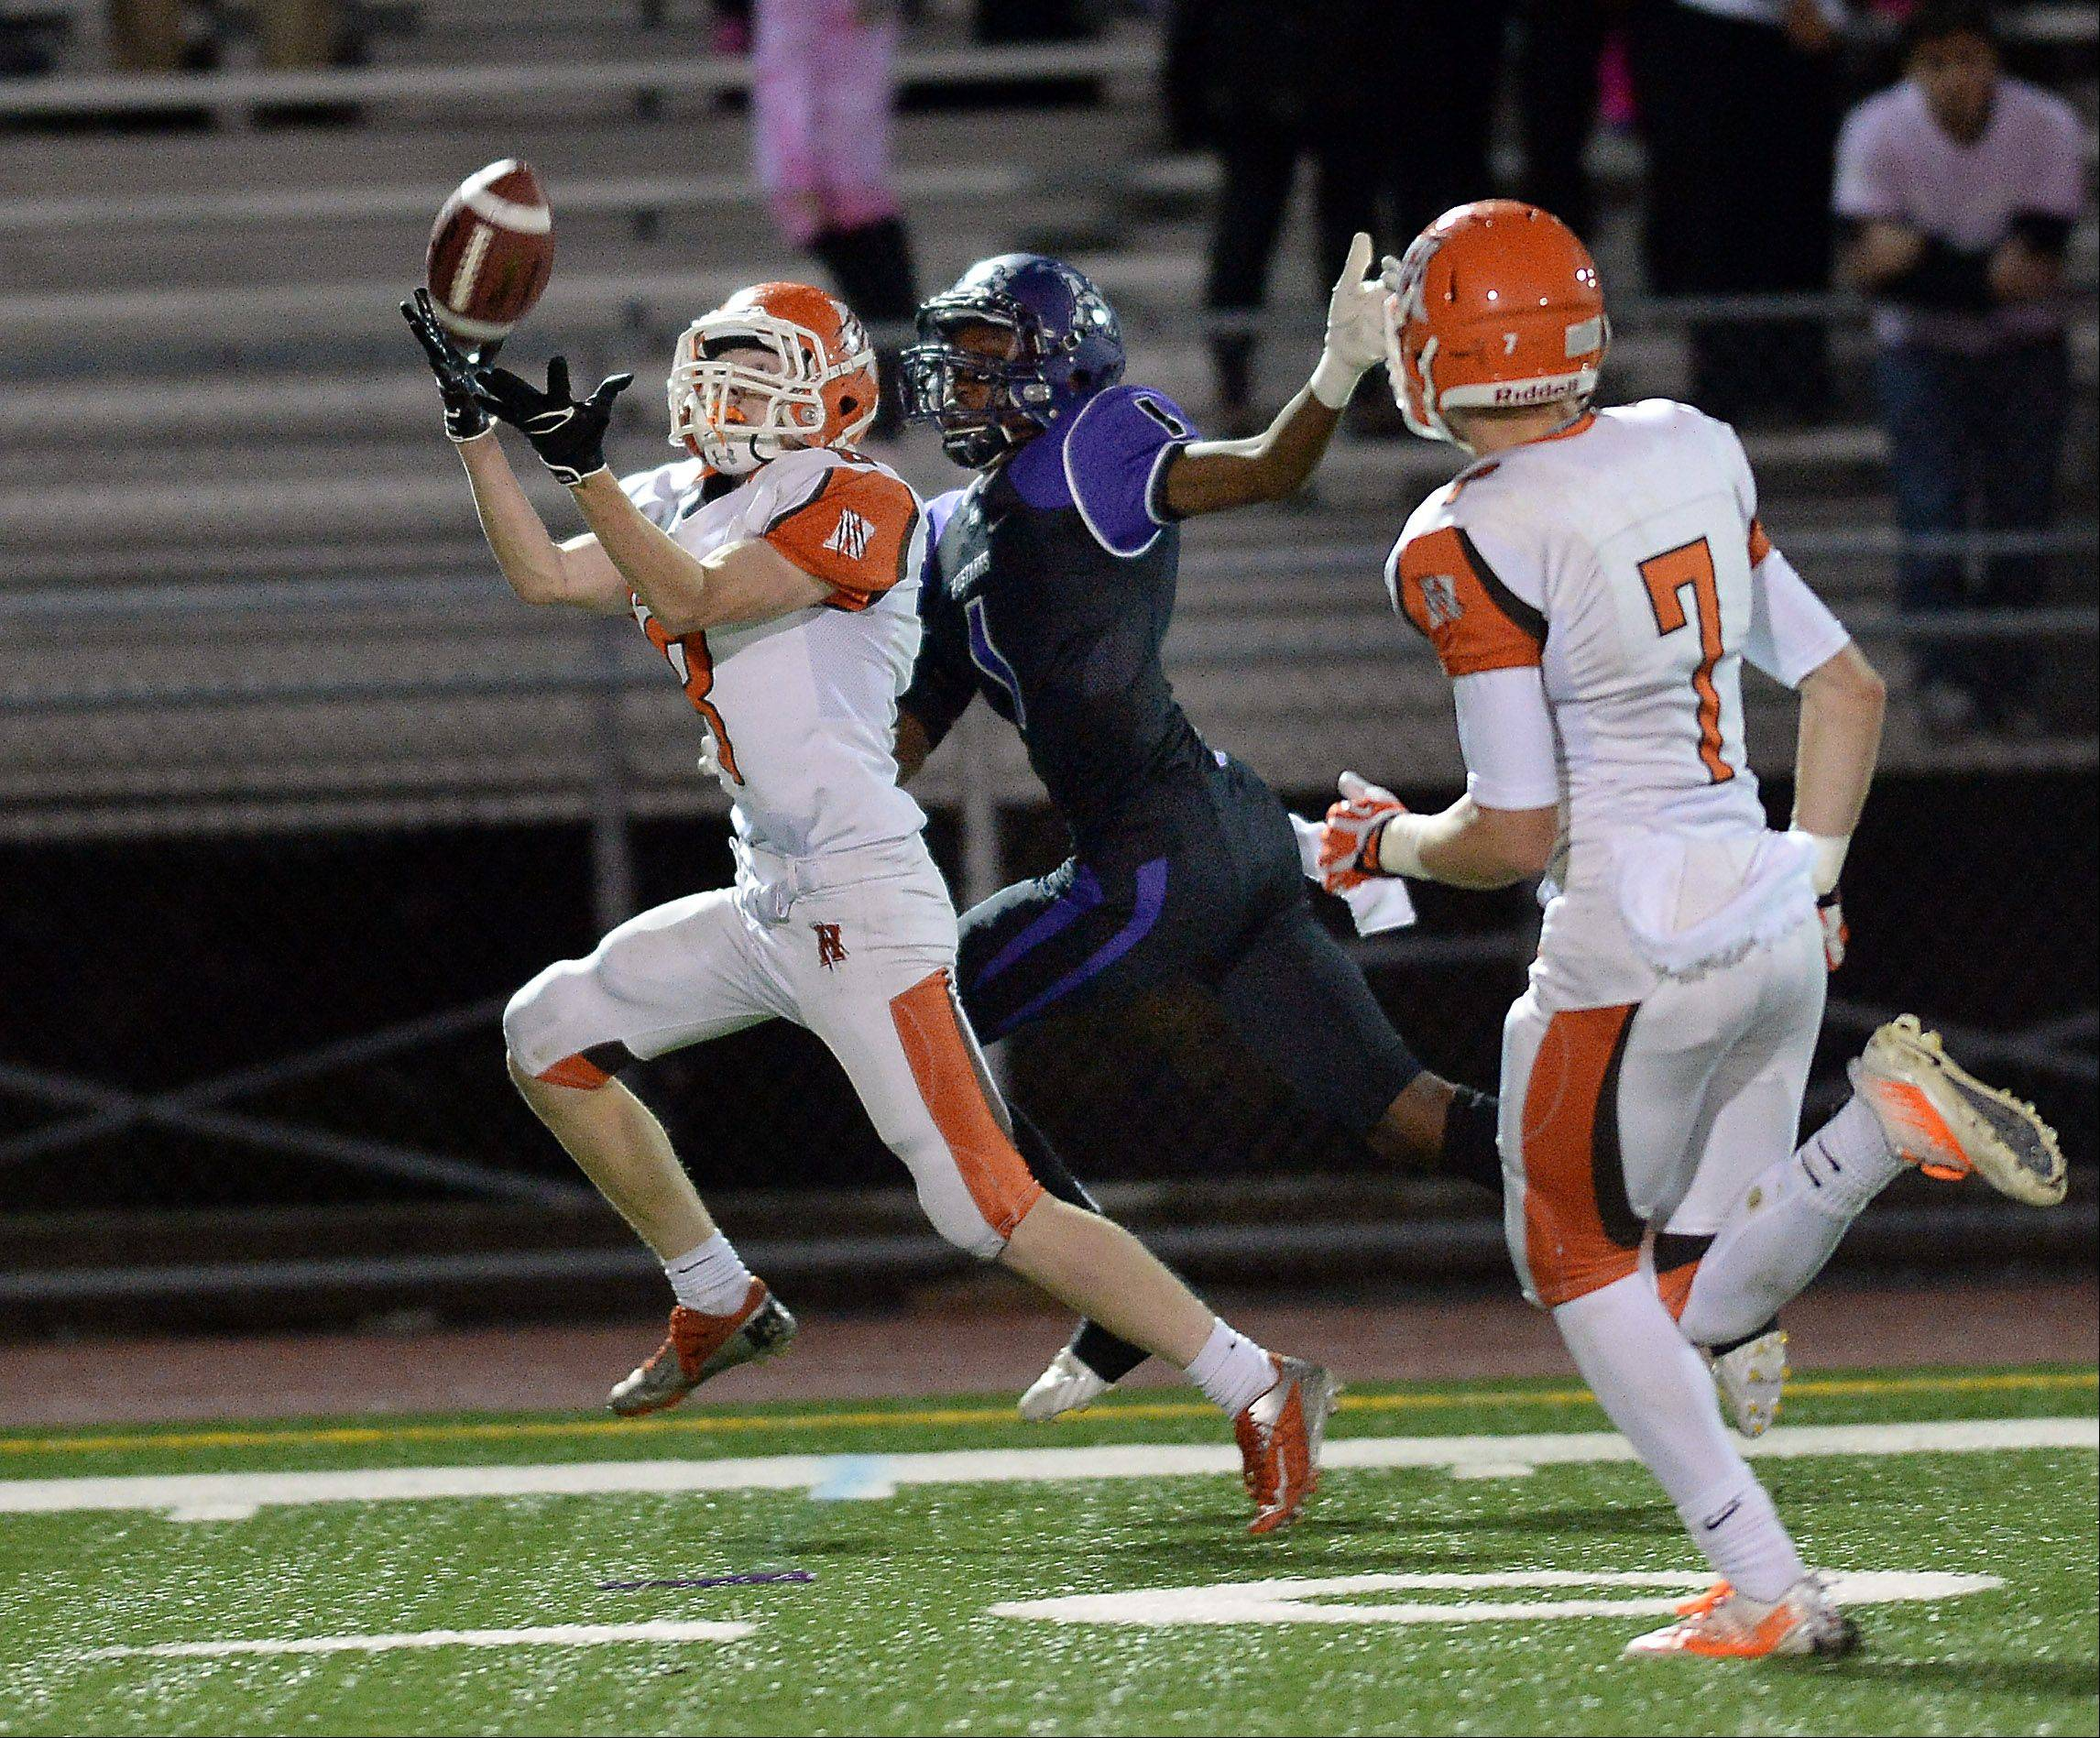 Hersey's Cole Monckton hauls in a pass that was intended for Rolling Meadows' Romello Boykin for a second-quarter interception Friday at Rolling Meadows.